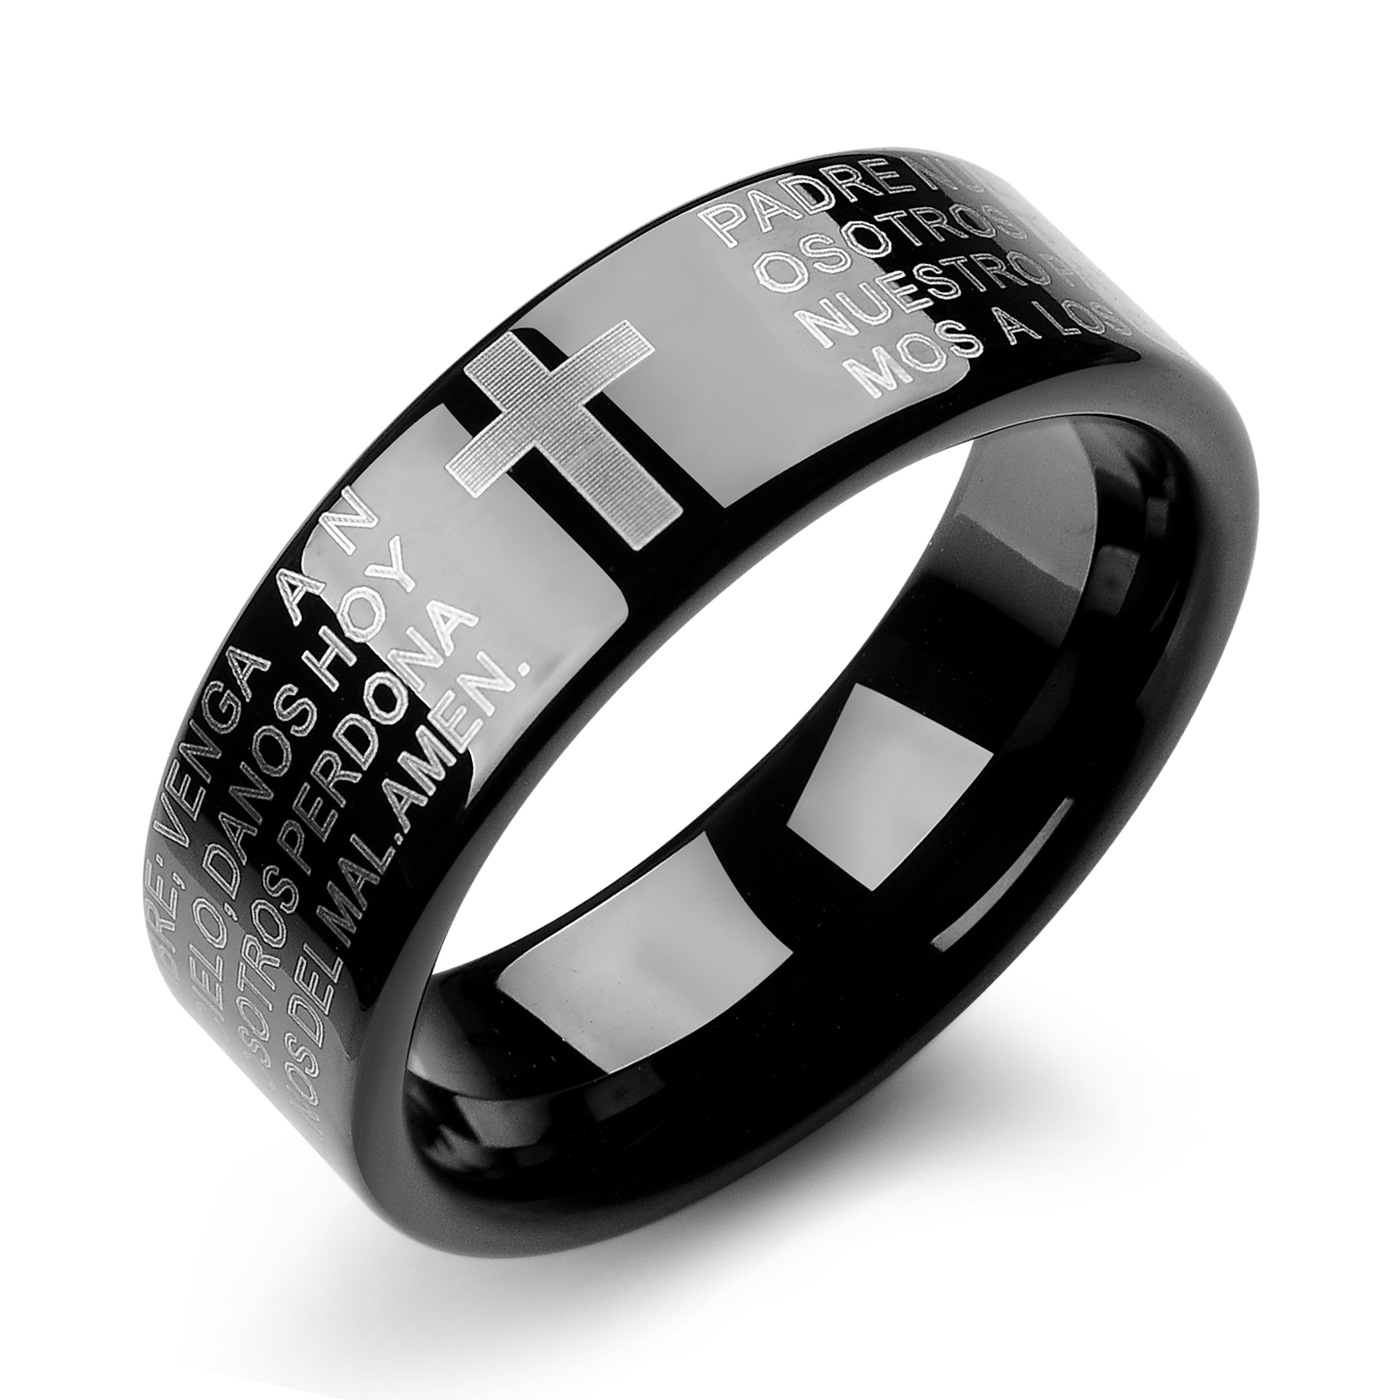 High Quality Scratch Resistance Men Black Tungsten Ring Jewelry Bible Cross Prayer Wholesale Price: Black Tungsten Wedding Band Cross At Websimilar.org